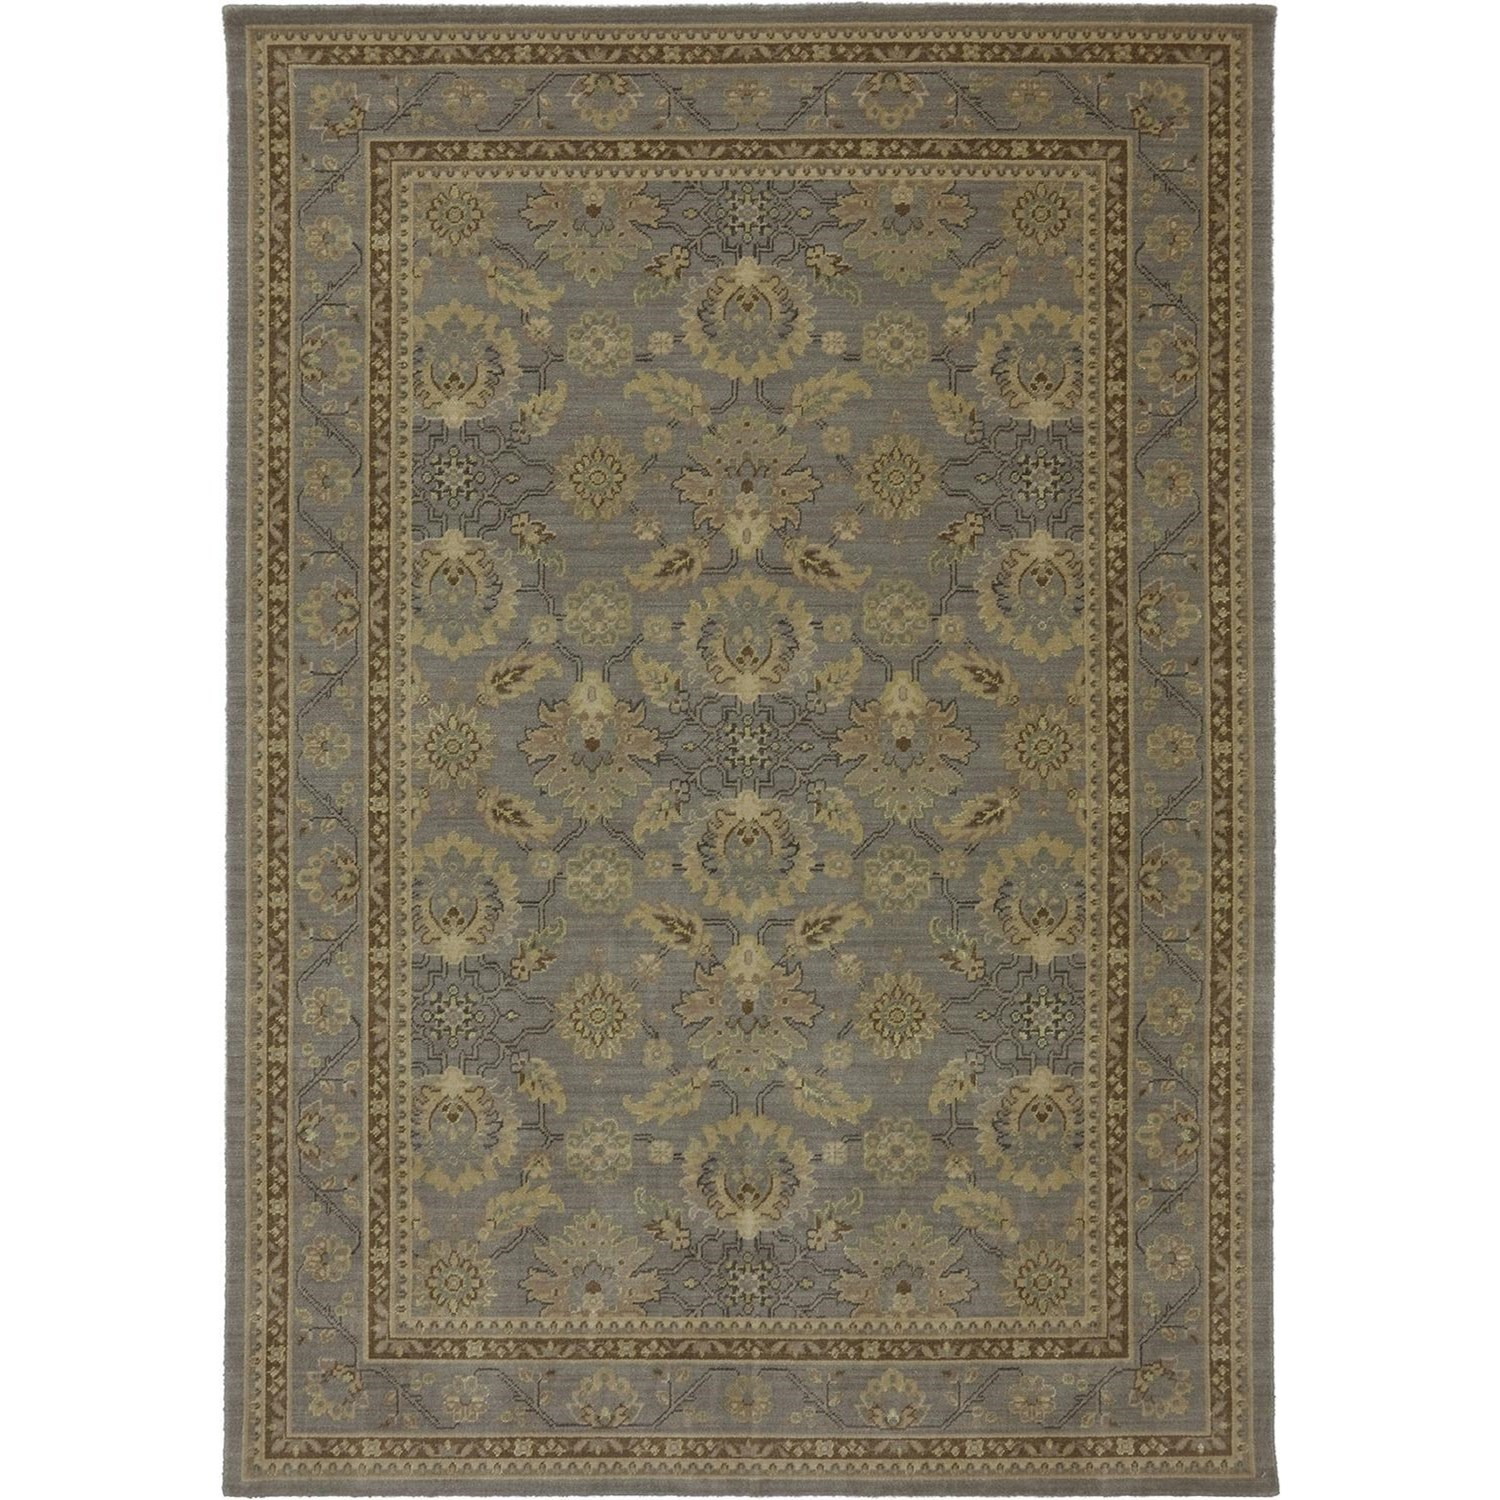 Karastan Rugs Evanescent 9'9x12'8 Pescara Gray Rug - Item Number: RG818 471 117152